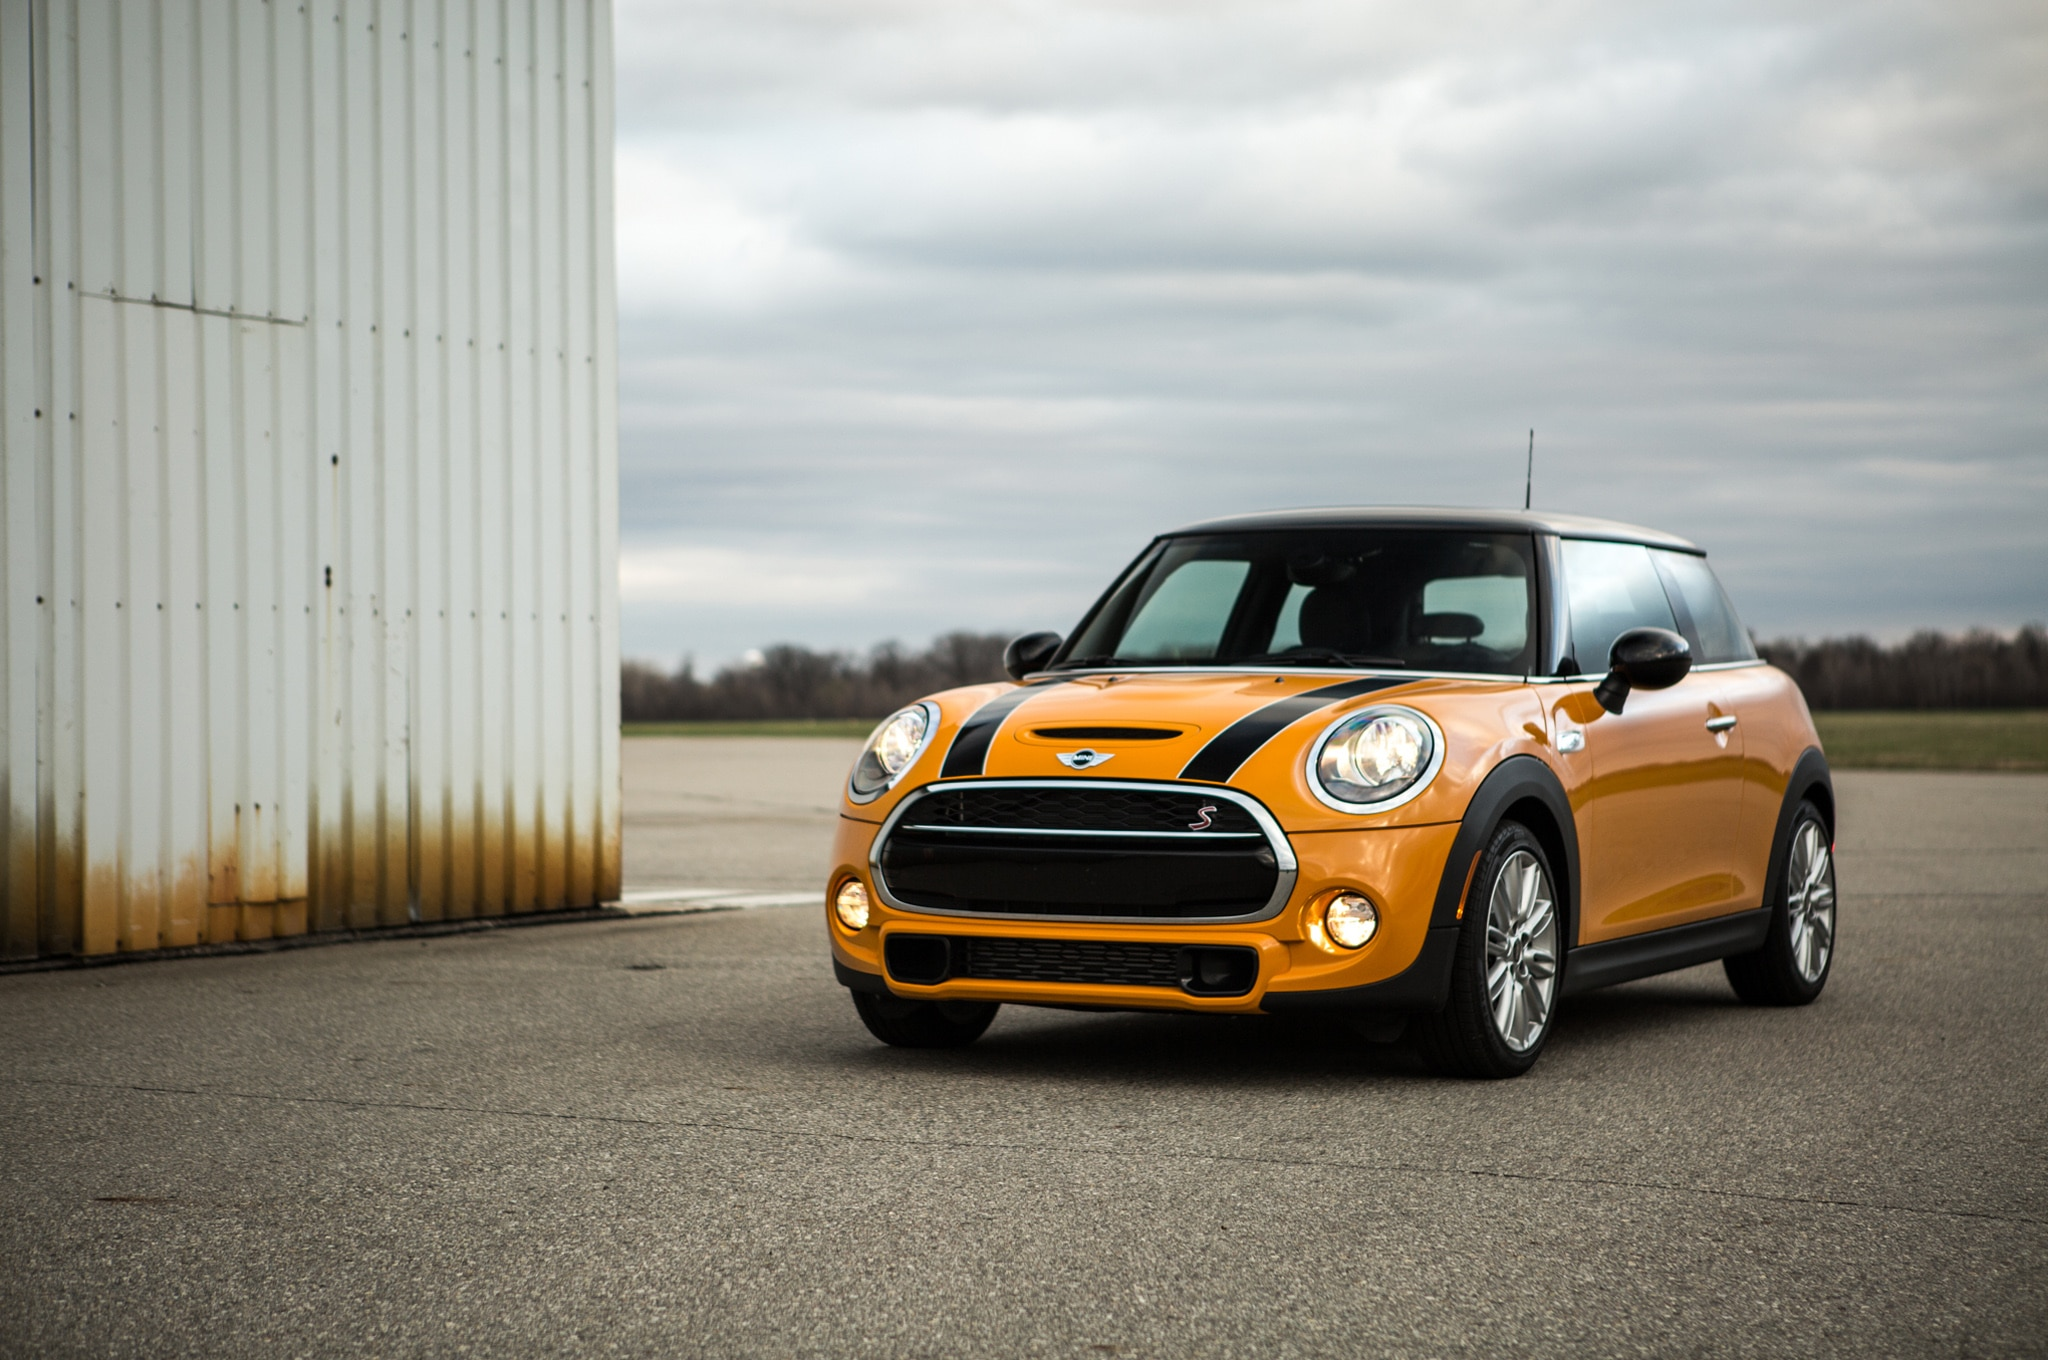 2014 Mini Cooper S 01 Front Three Quarter1